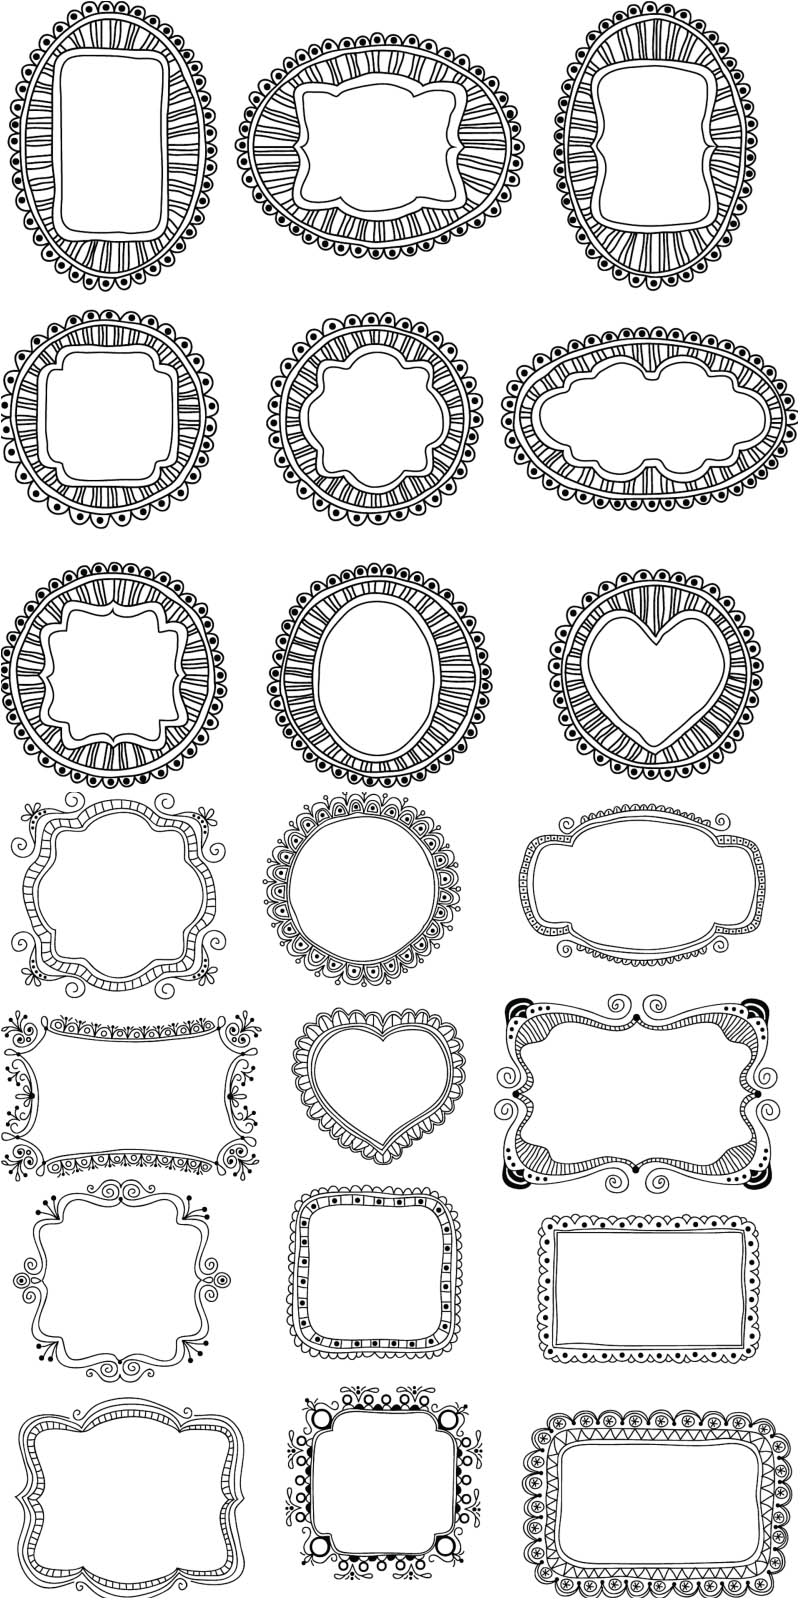 20 Ornate Frame Vector Images